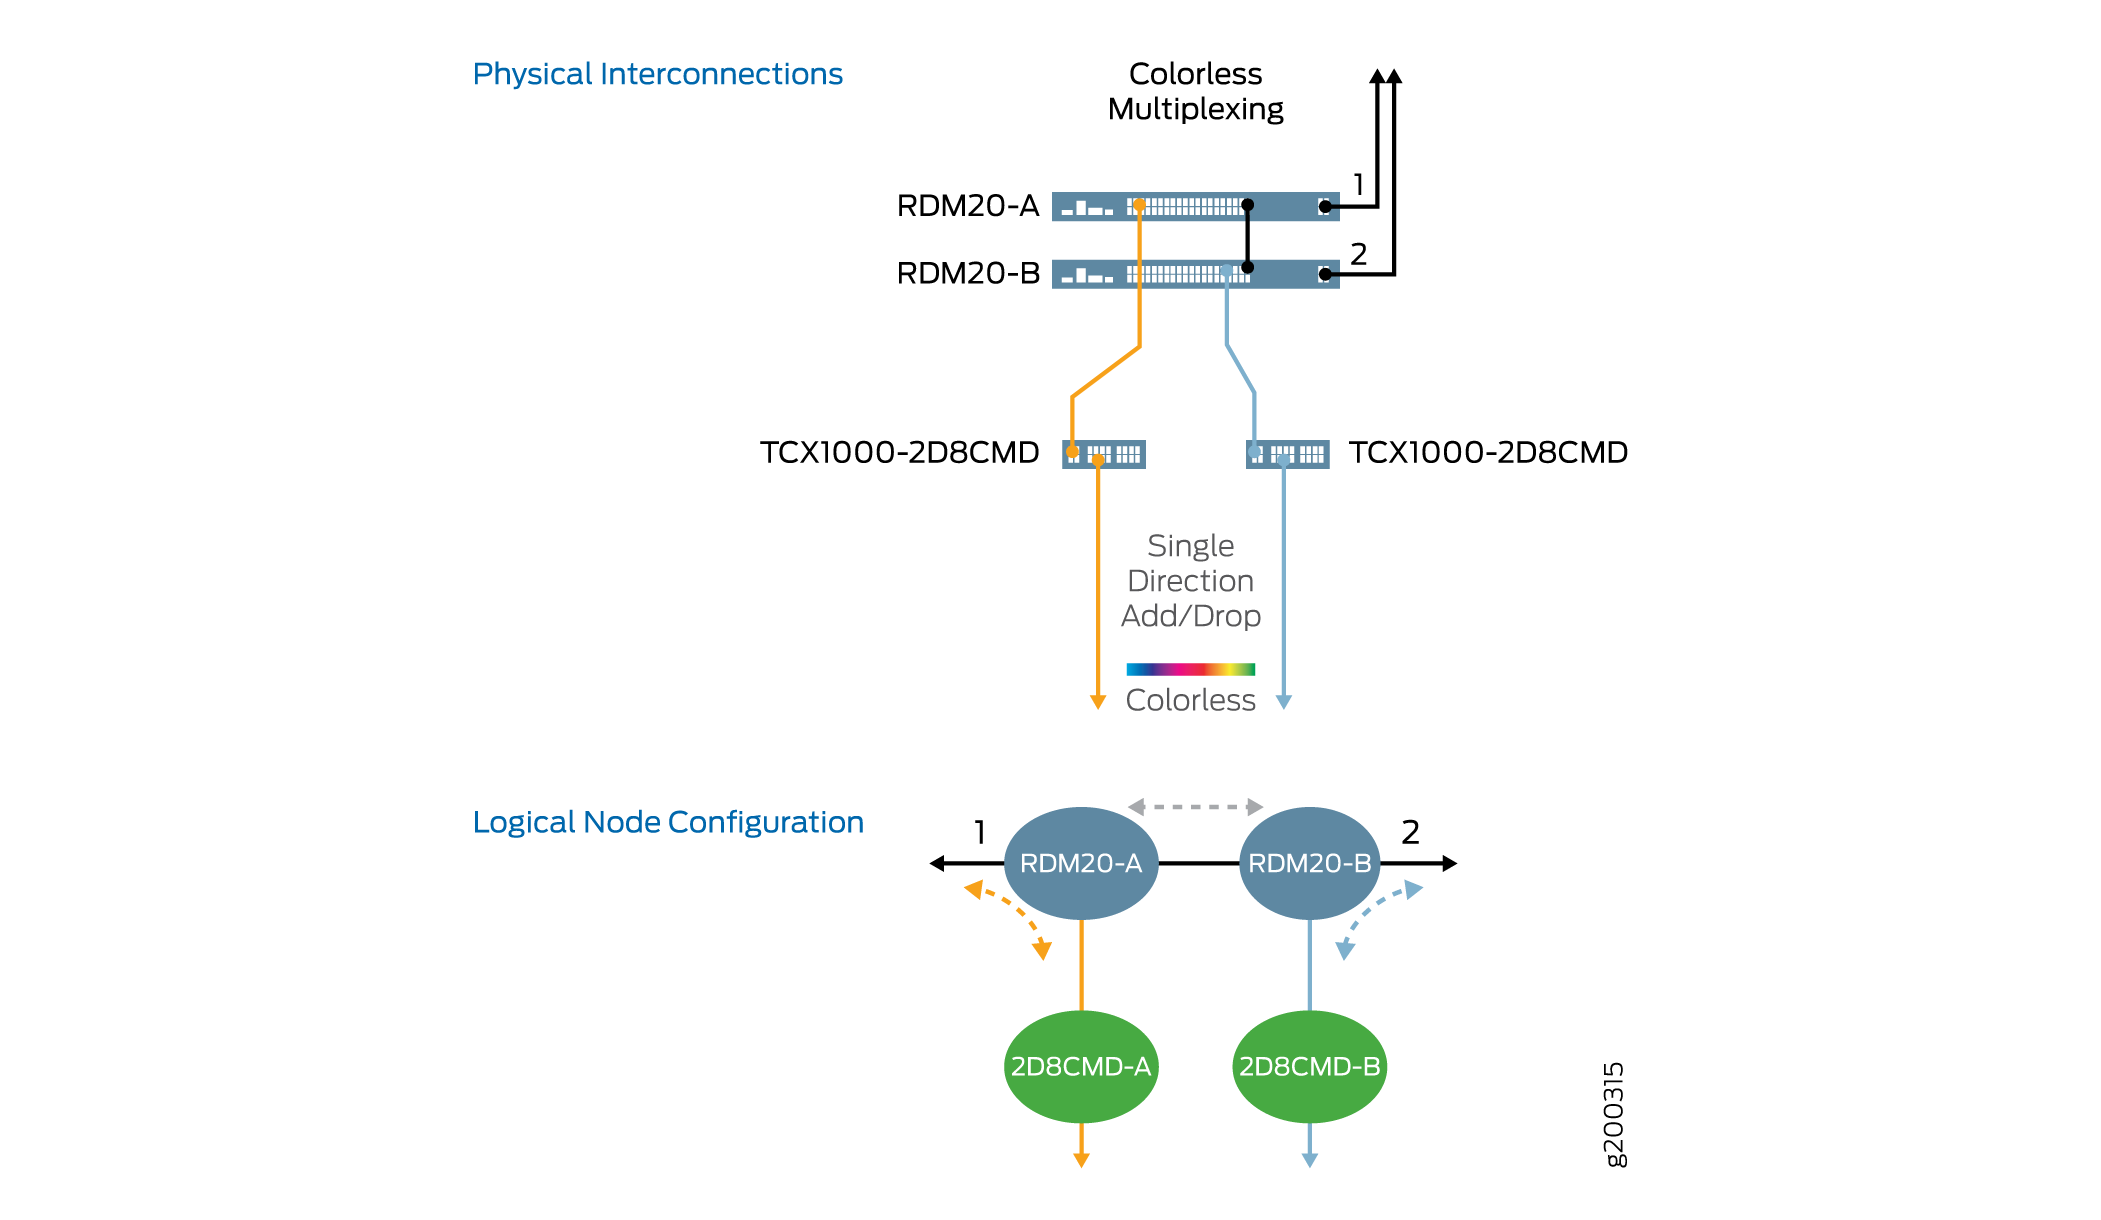 Understanding Tcx1000 Rdm20 And 2d8cmd Multiplexing Logic Diagram For 8 1 Multiplexer Single Direction Add Drop Colorless With